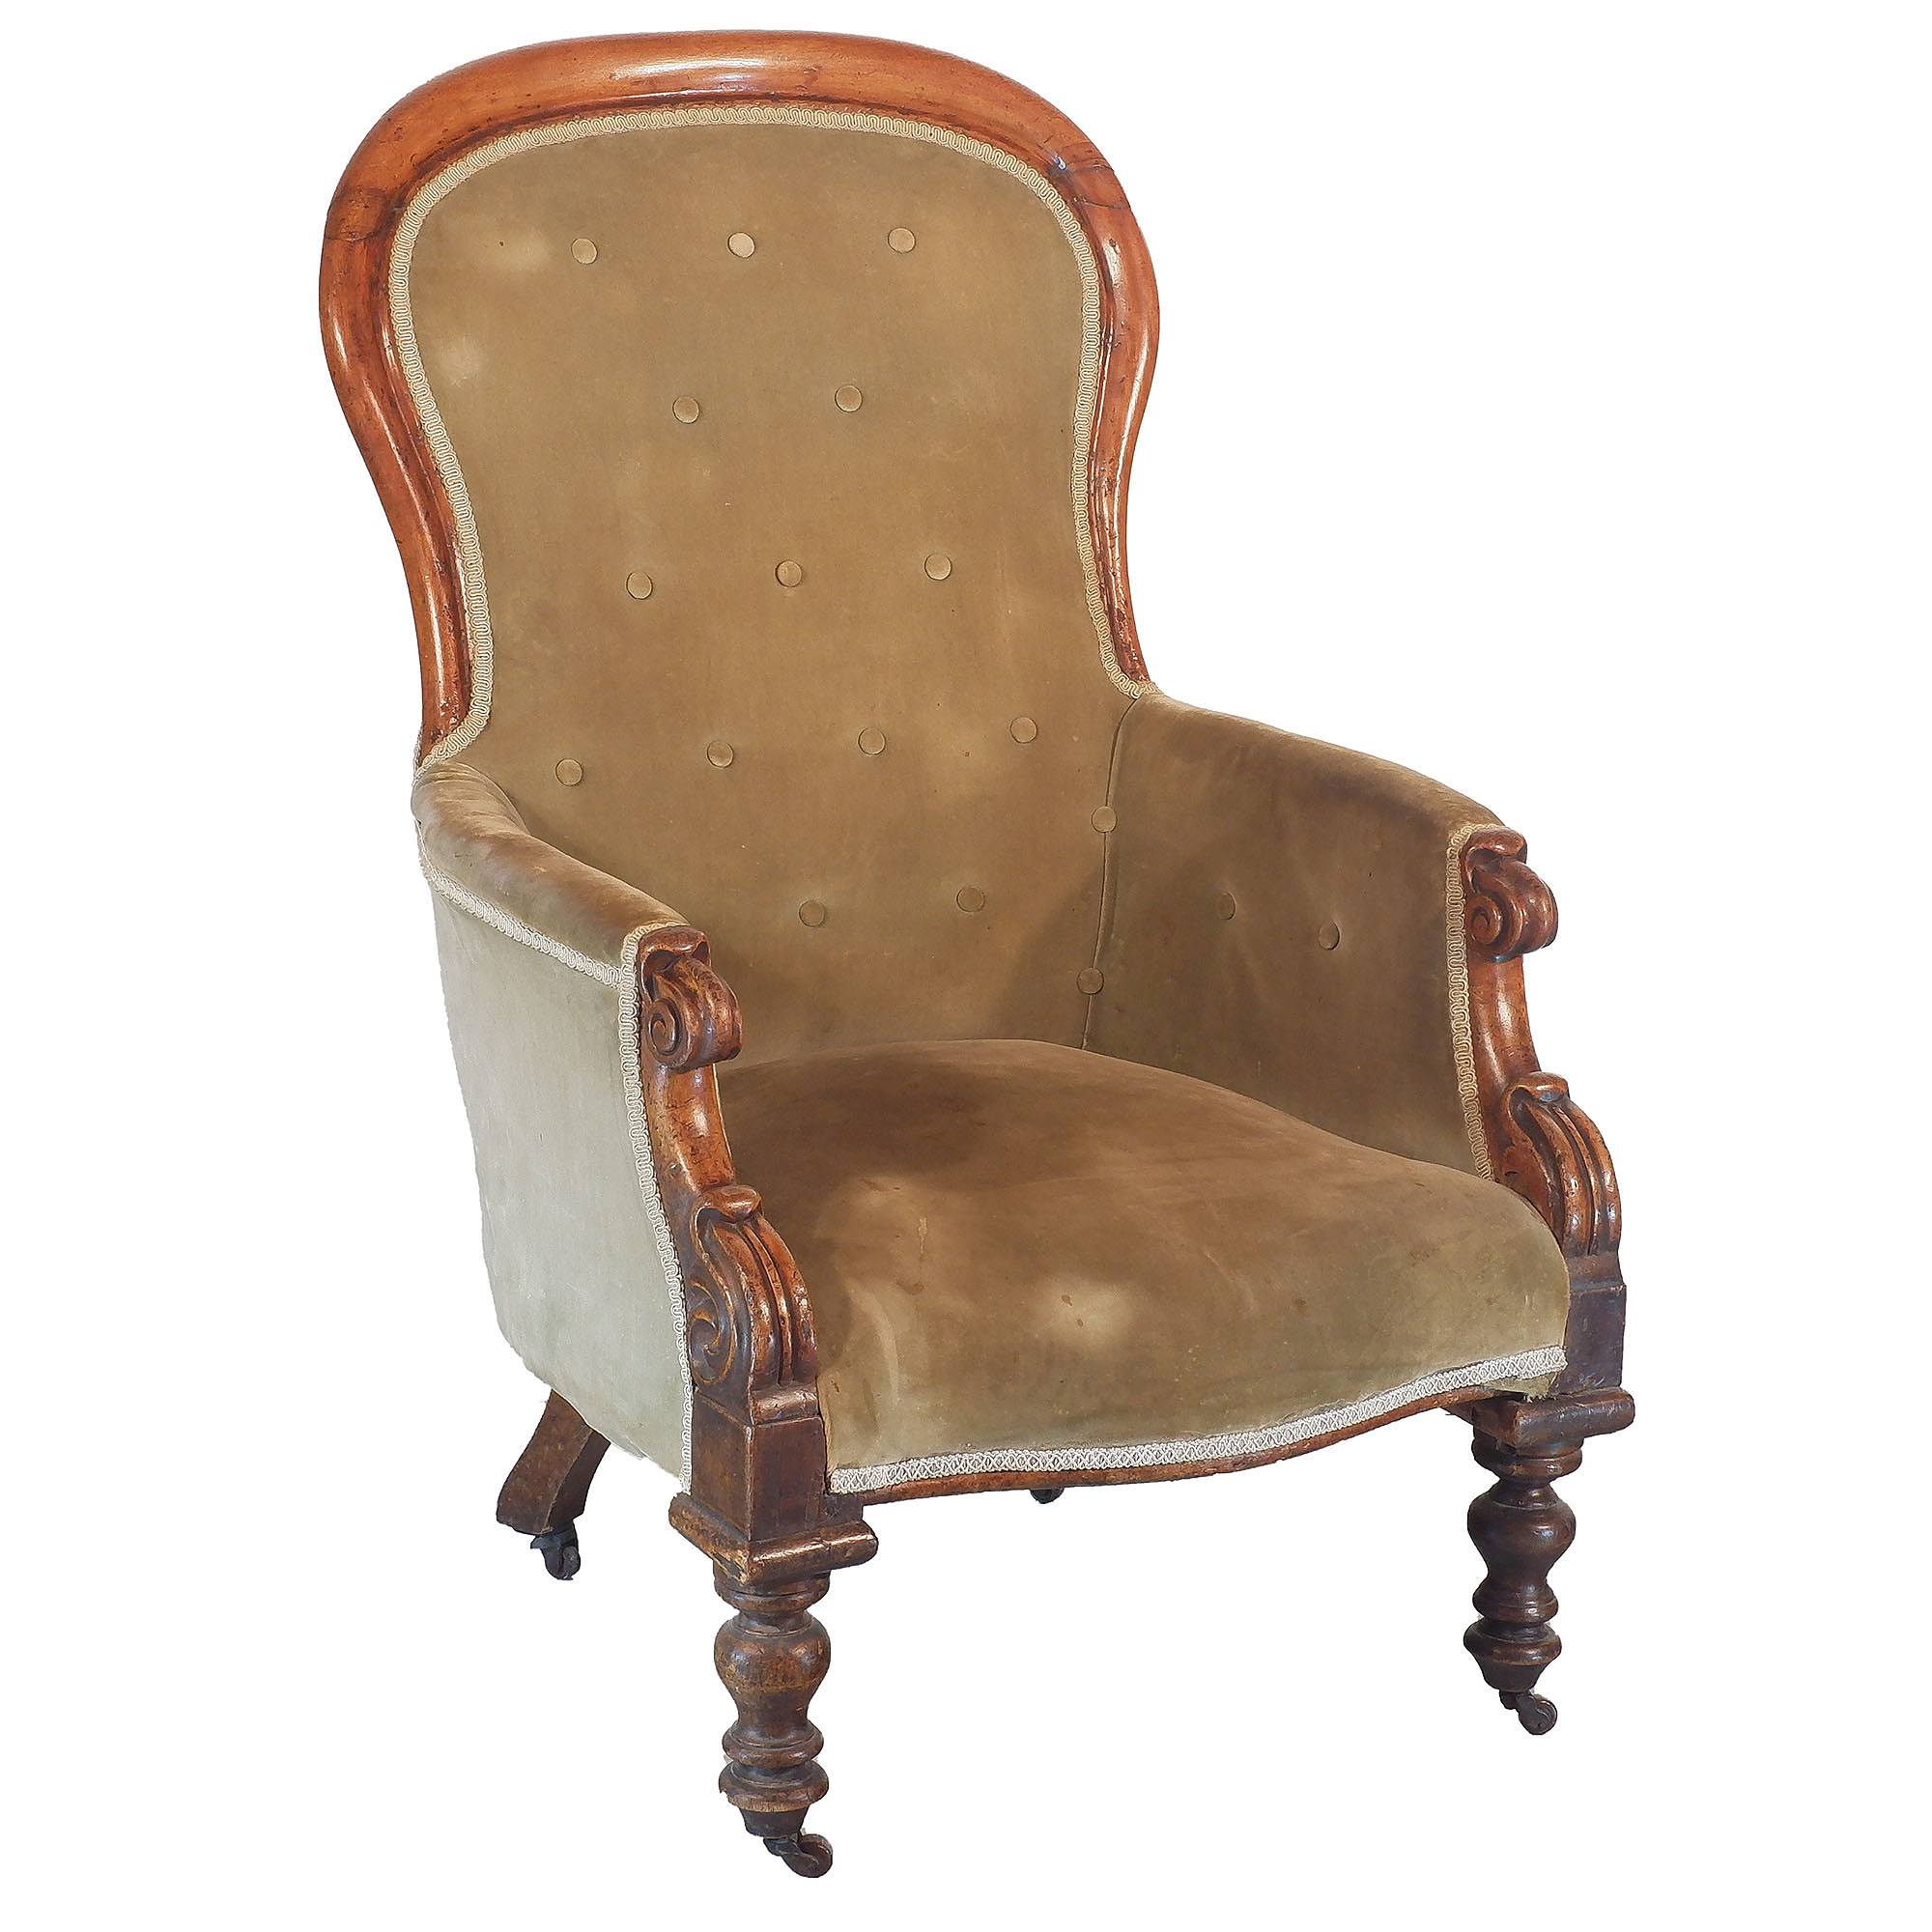 'Early Victorian Salon Chair Circa 1850'